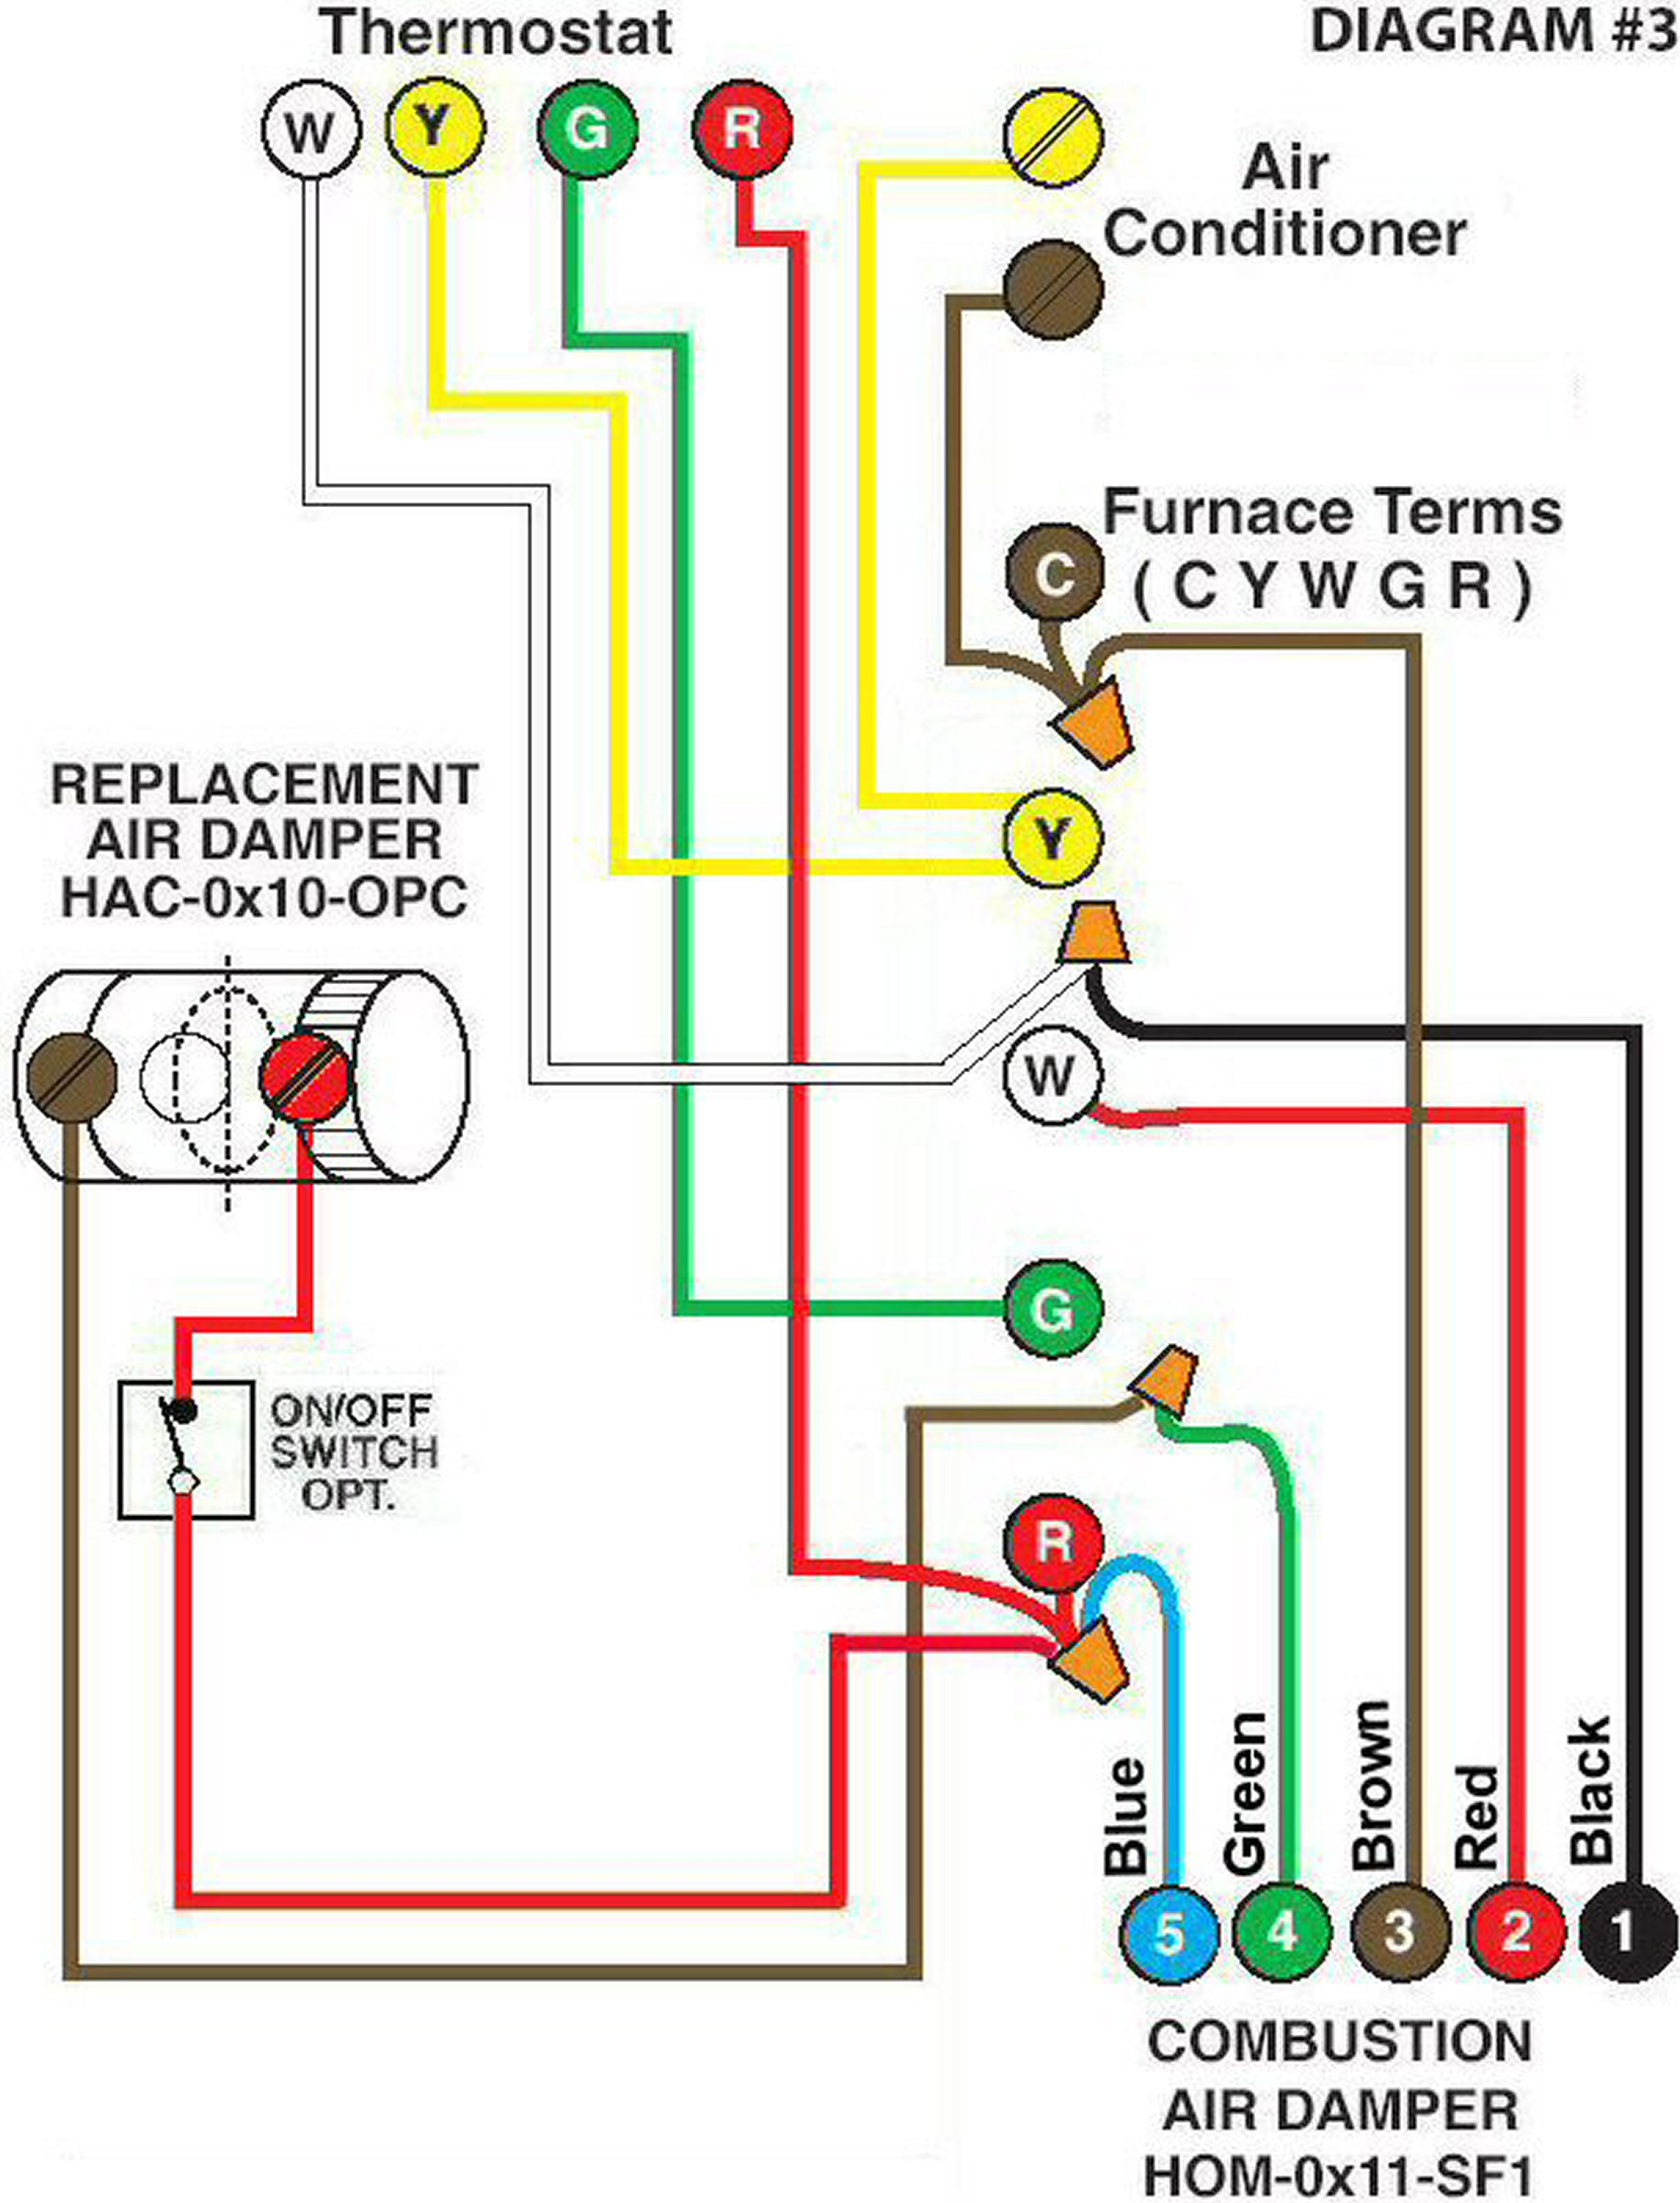 Color Wiring Diagram #3